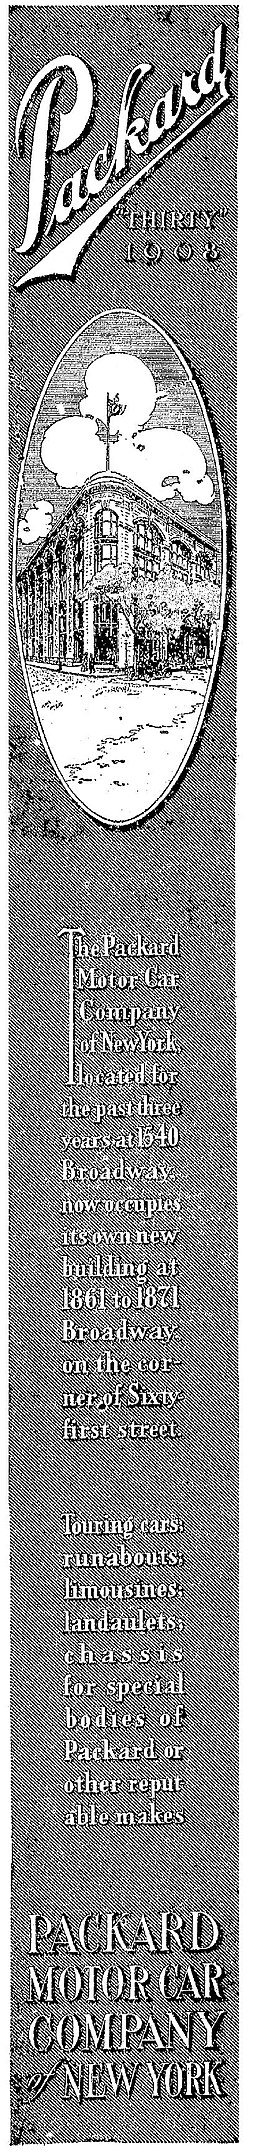 1907 Packard, The New York Times, November 6, 1907 Packard 1907-1106.jpg